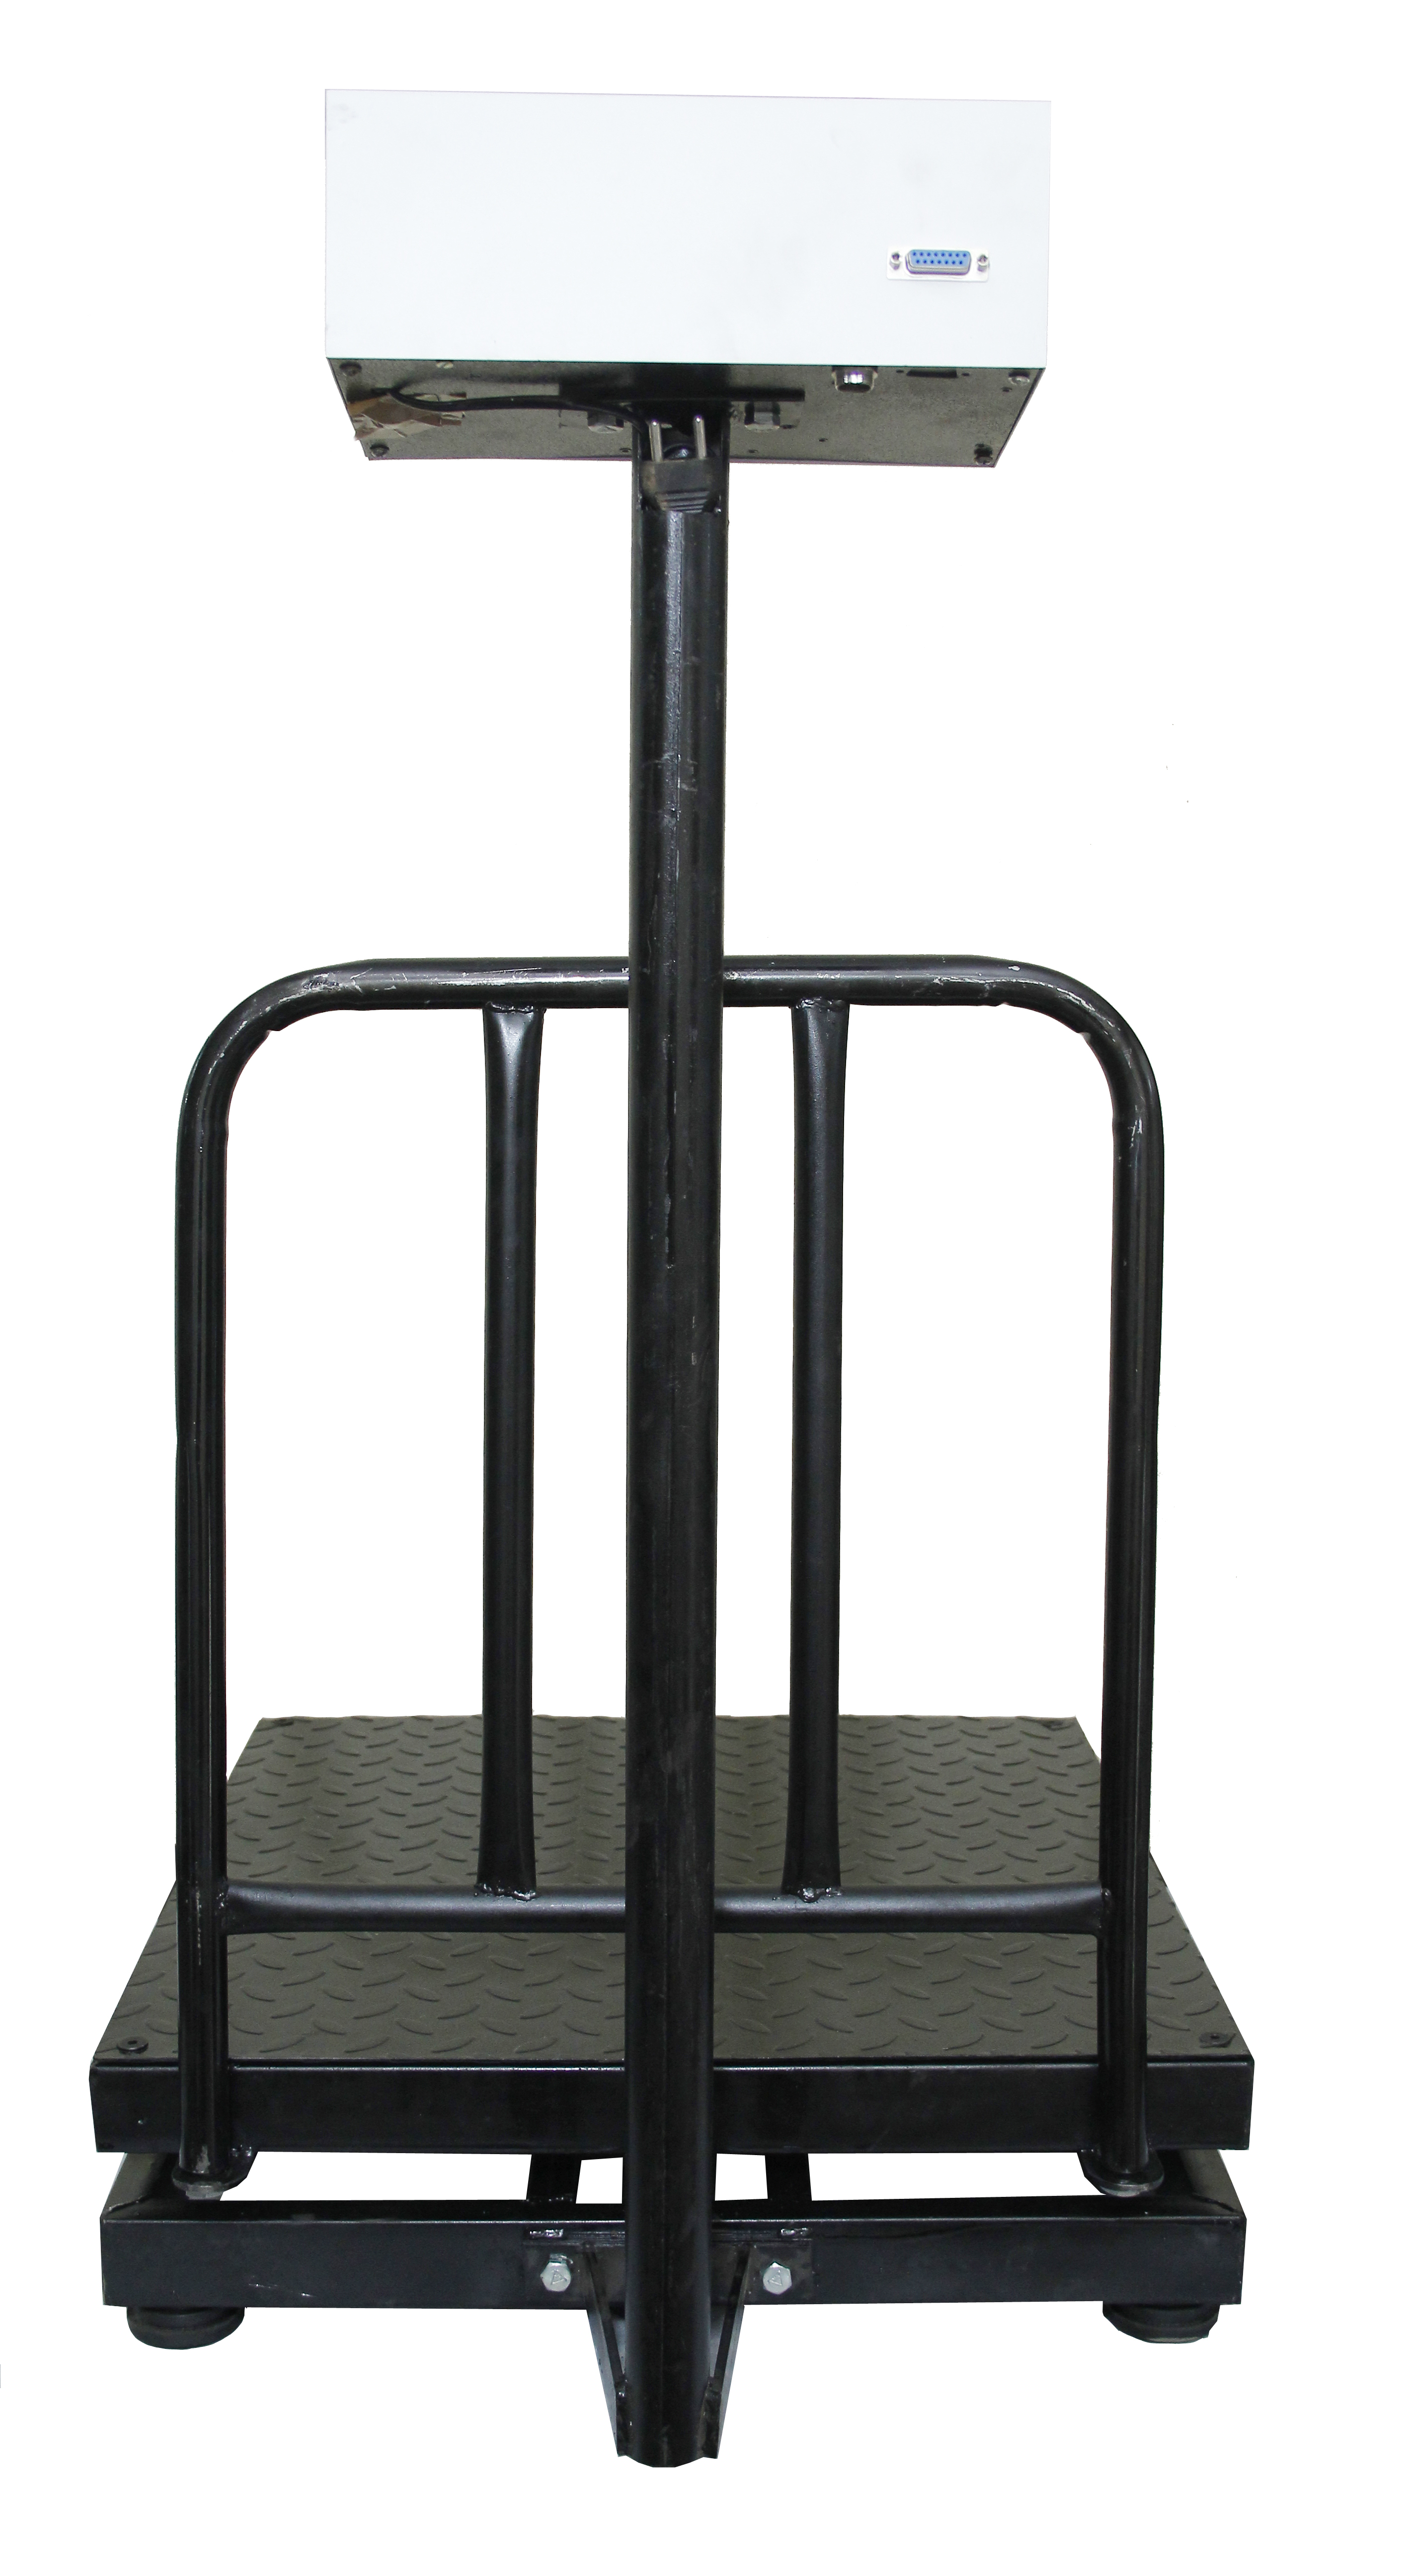 300 kg weighing scales